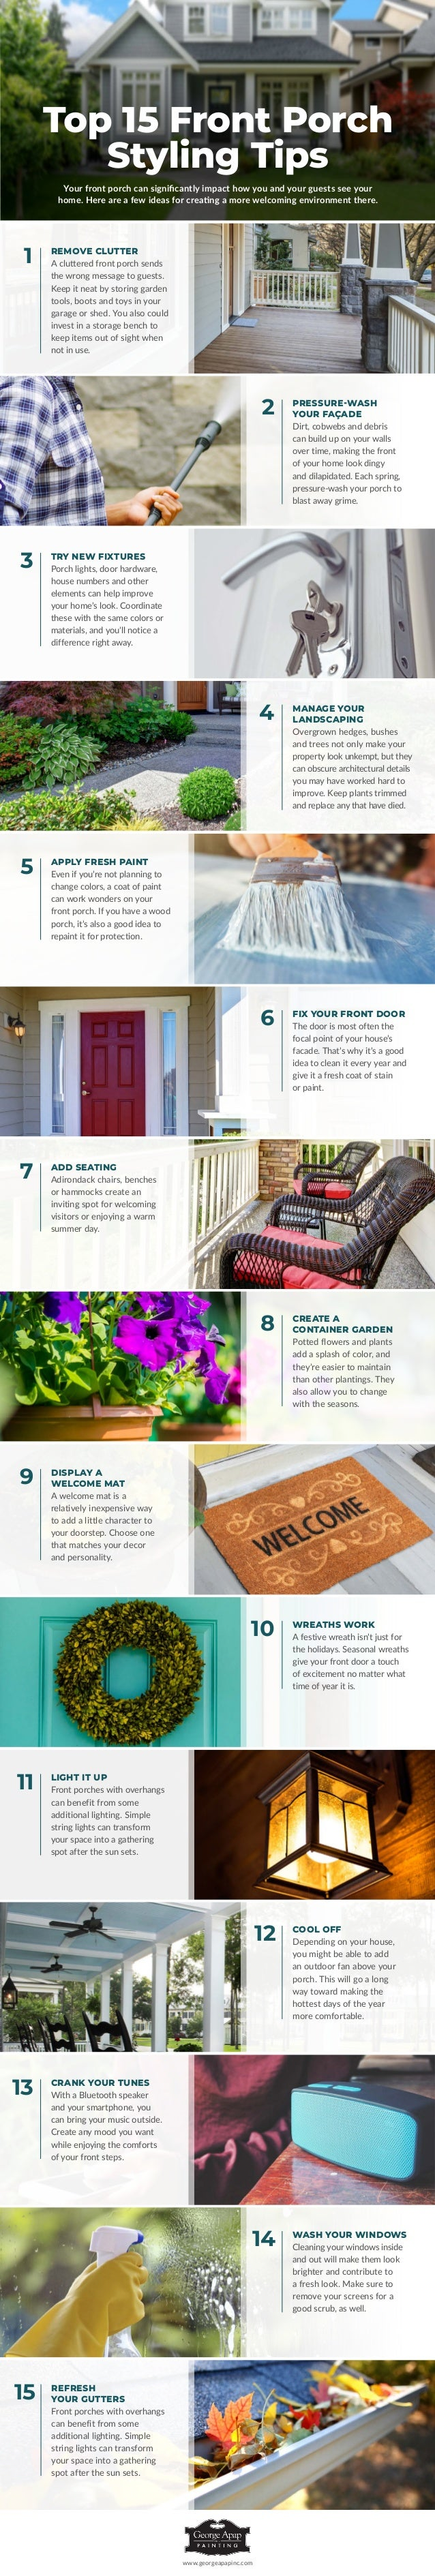 Top 15 Front Porch Styling Tips www.georgeapapinc.com Your front porch can significantly impact how you and your guests se...